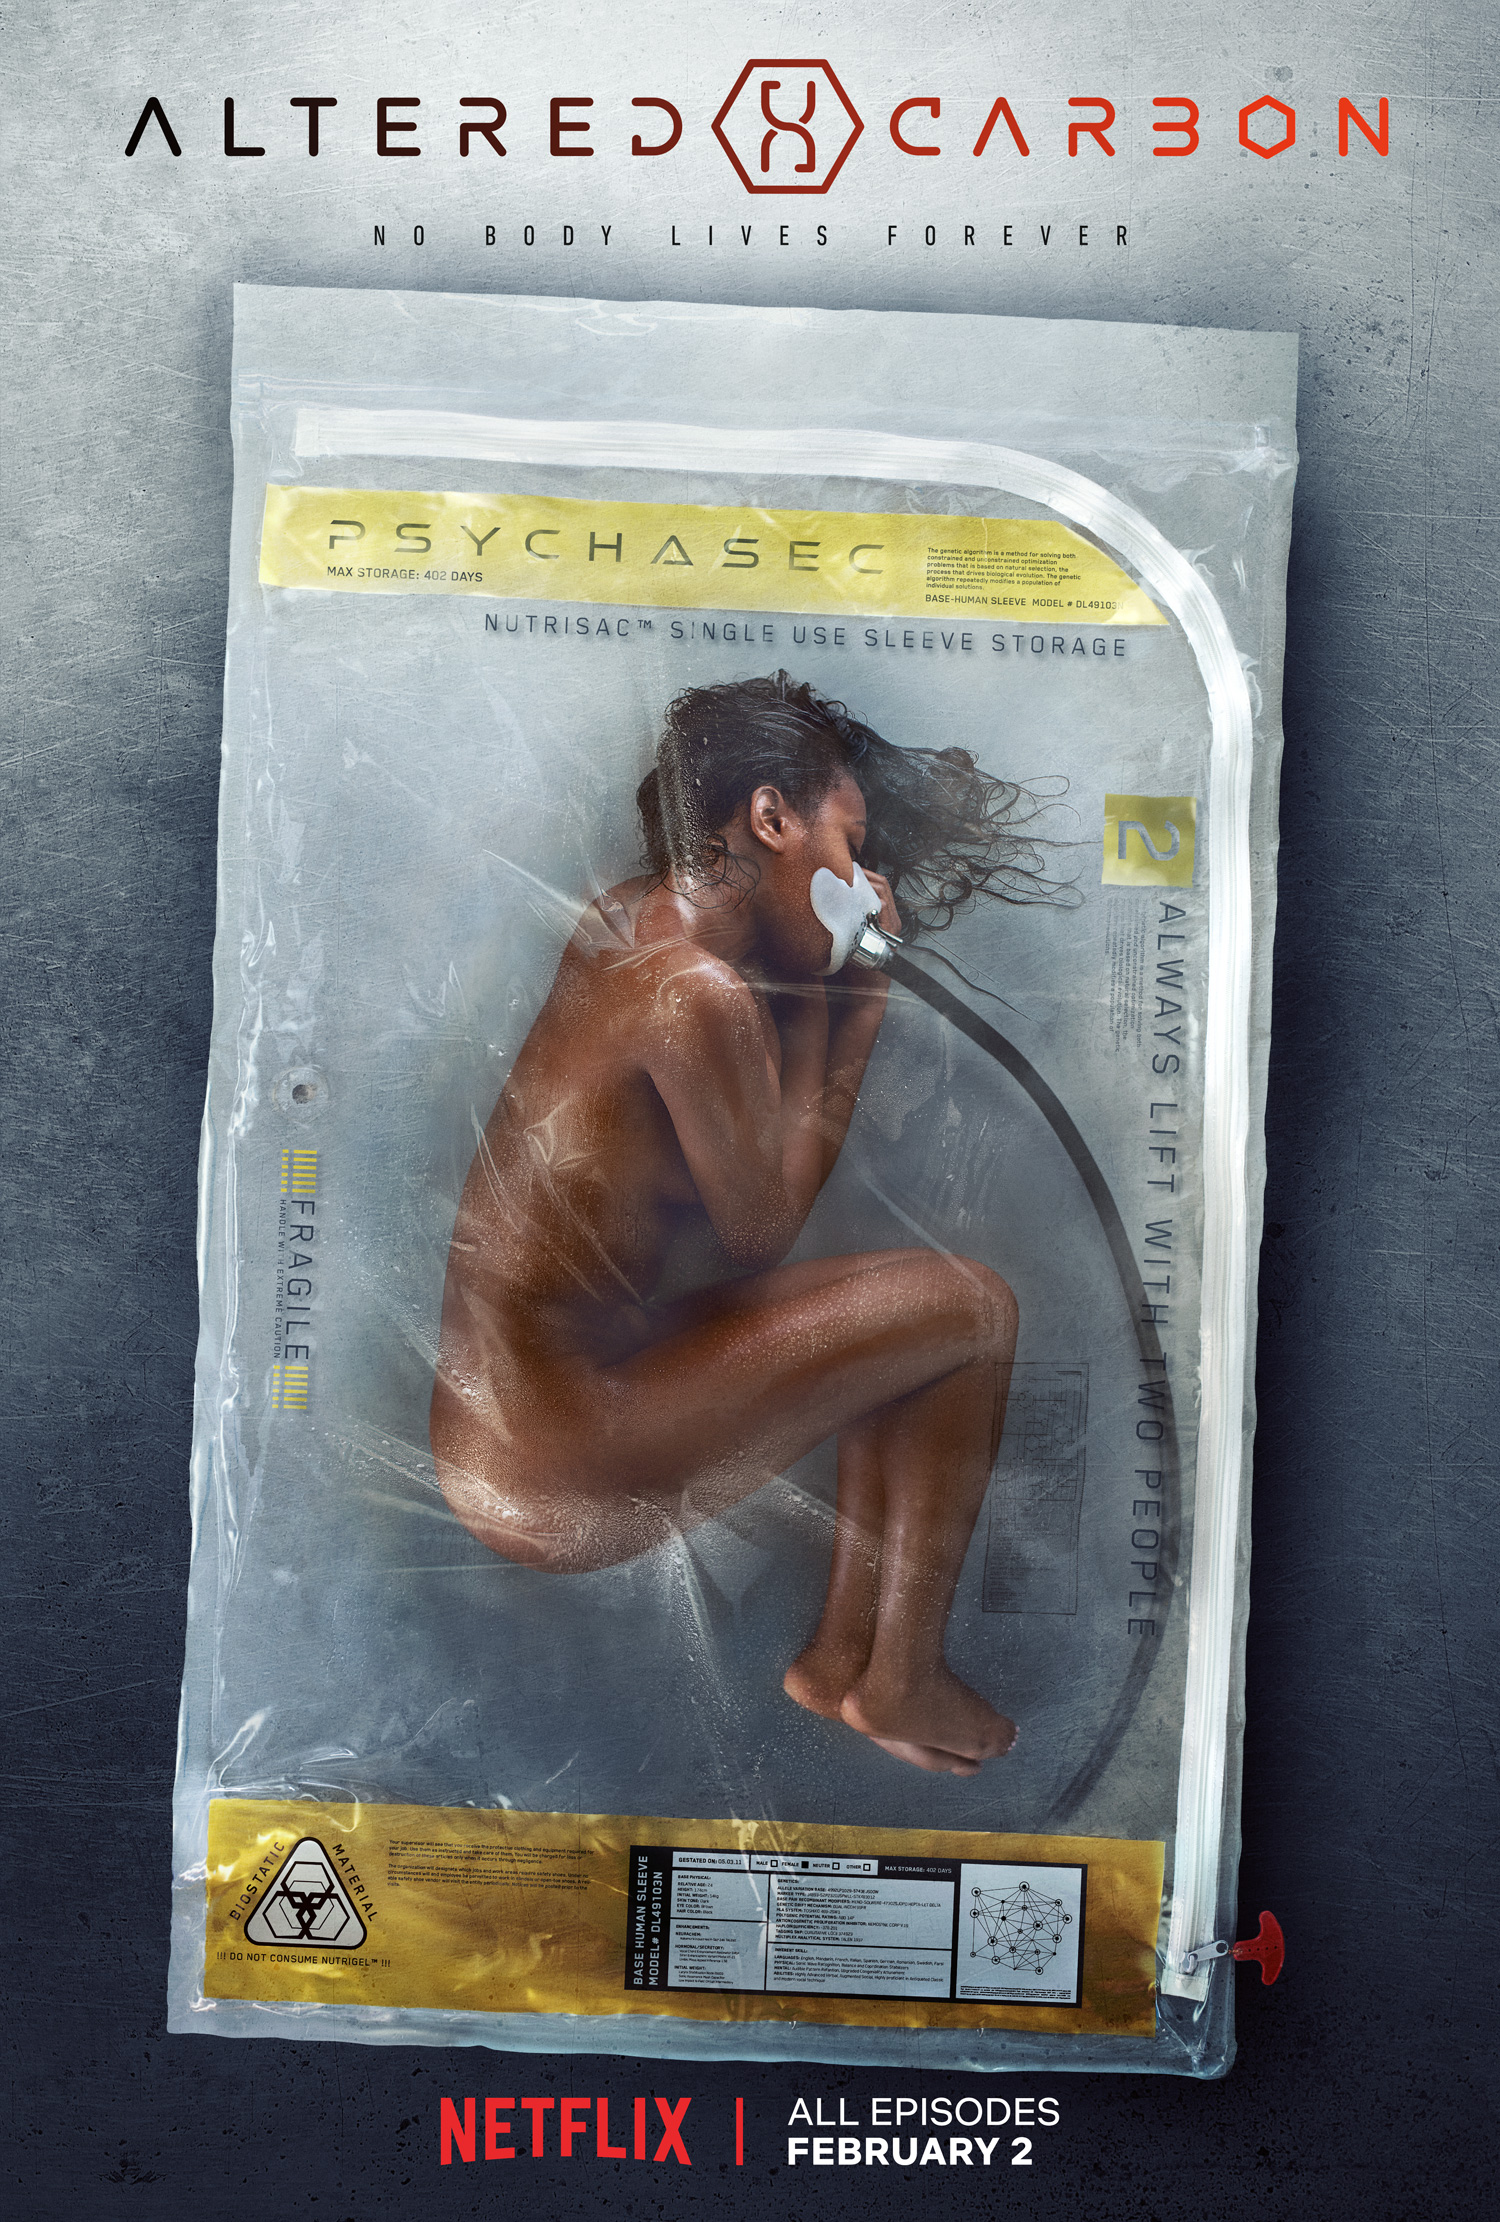 Altered Carbon Handlung